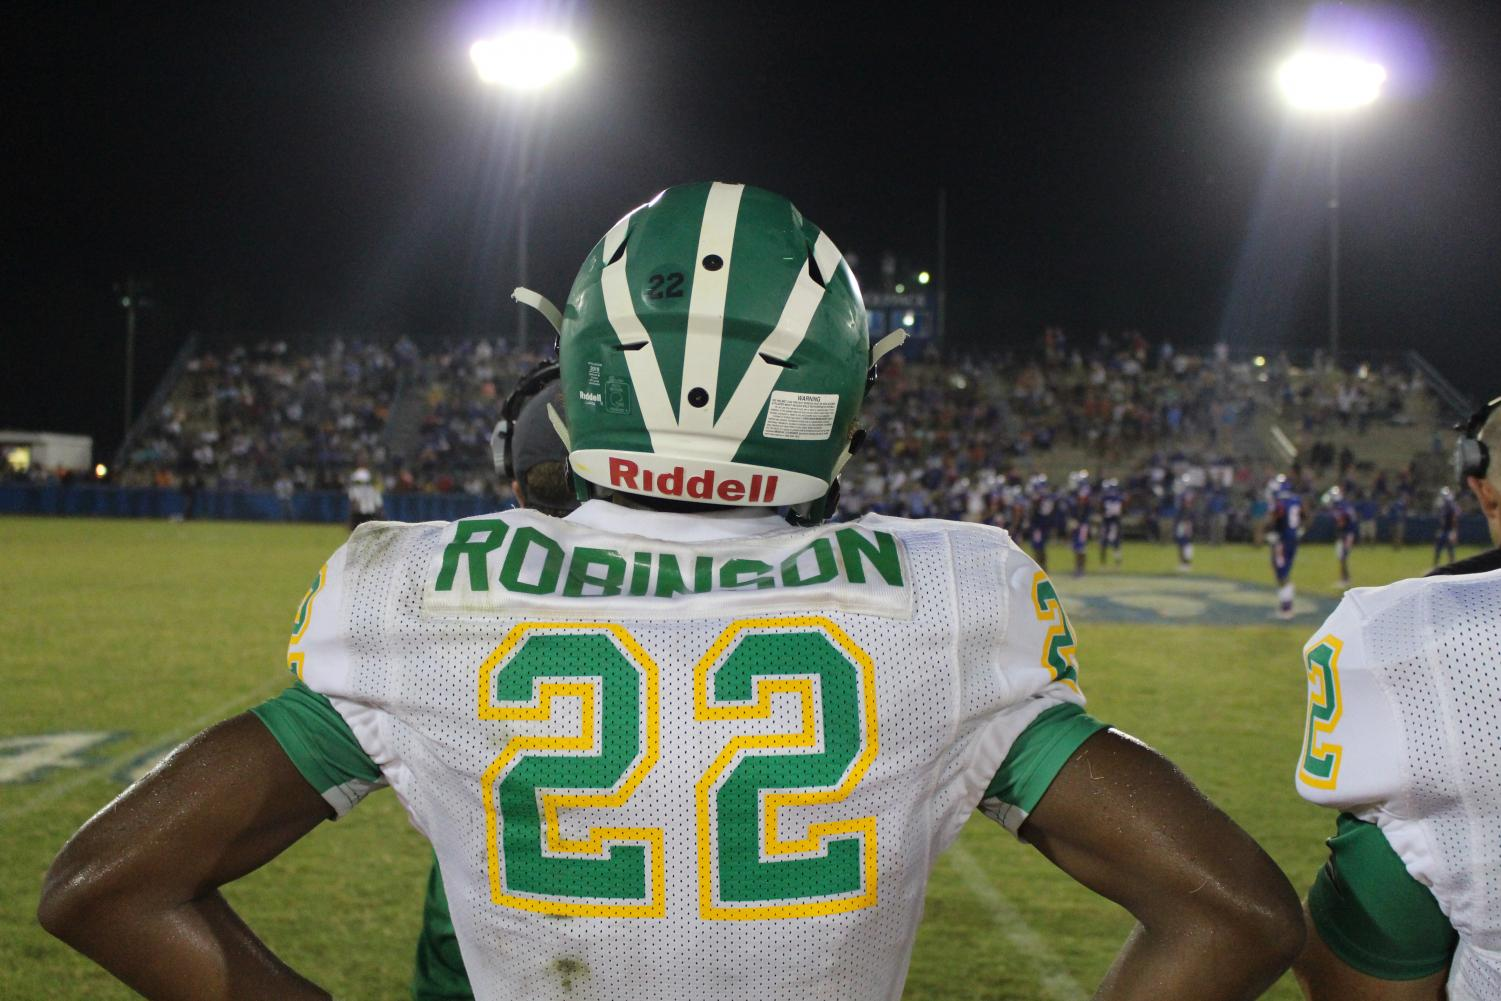 True+Robinson+stands+proudly+as+he+cheers+on+his+fellow+teammates.